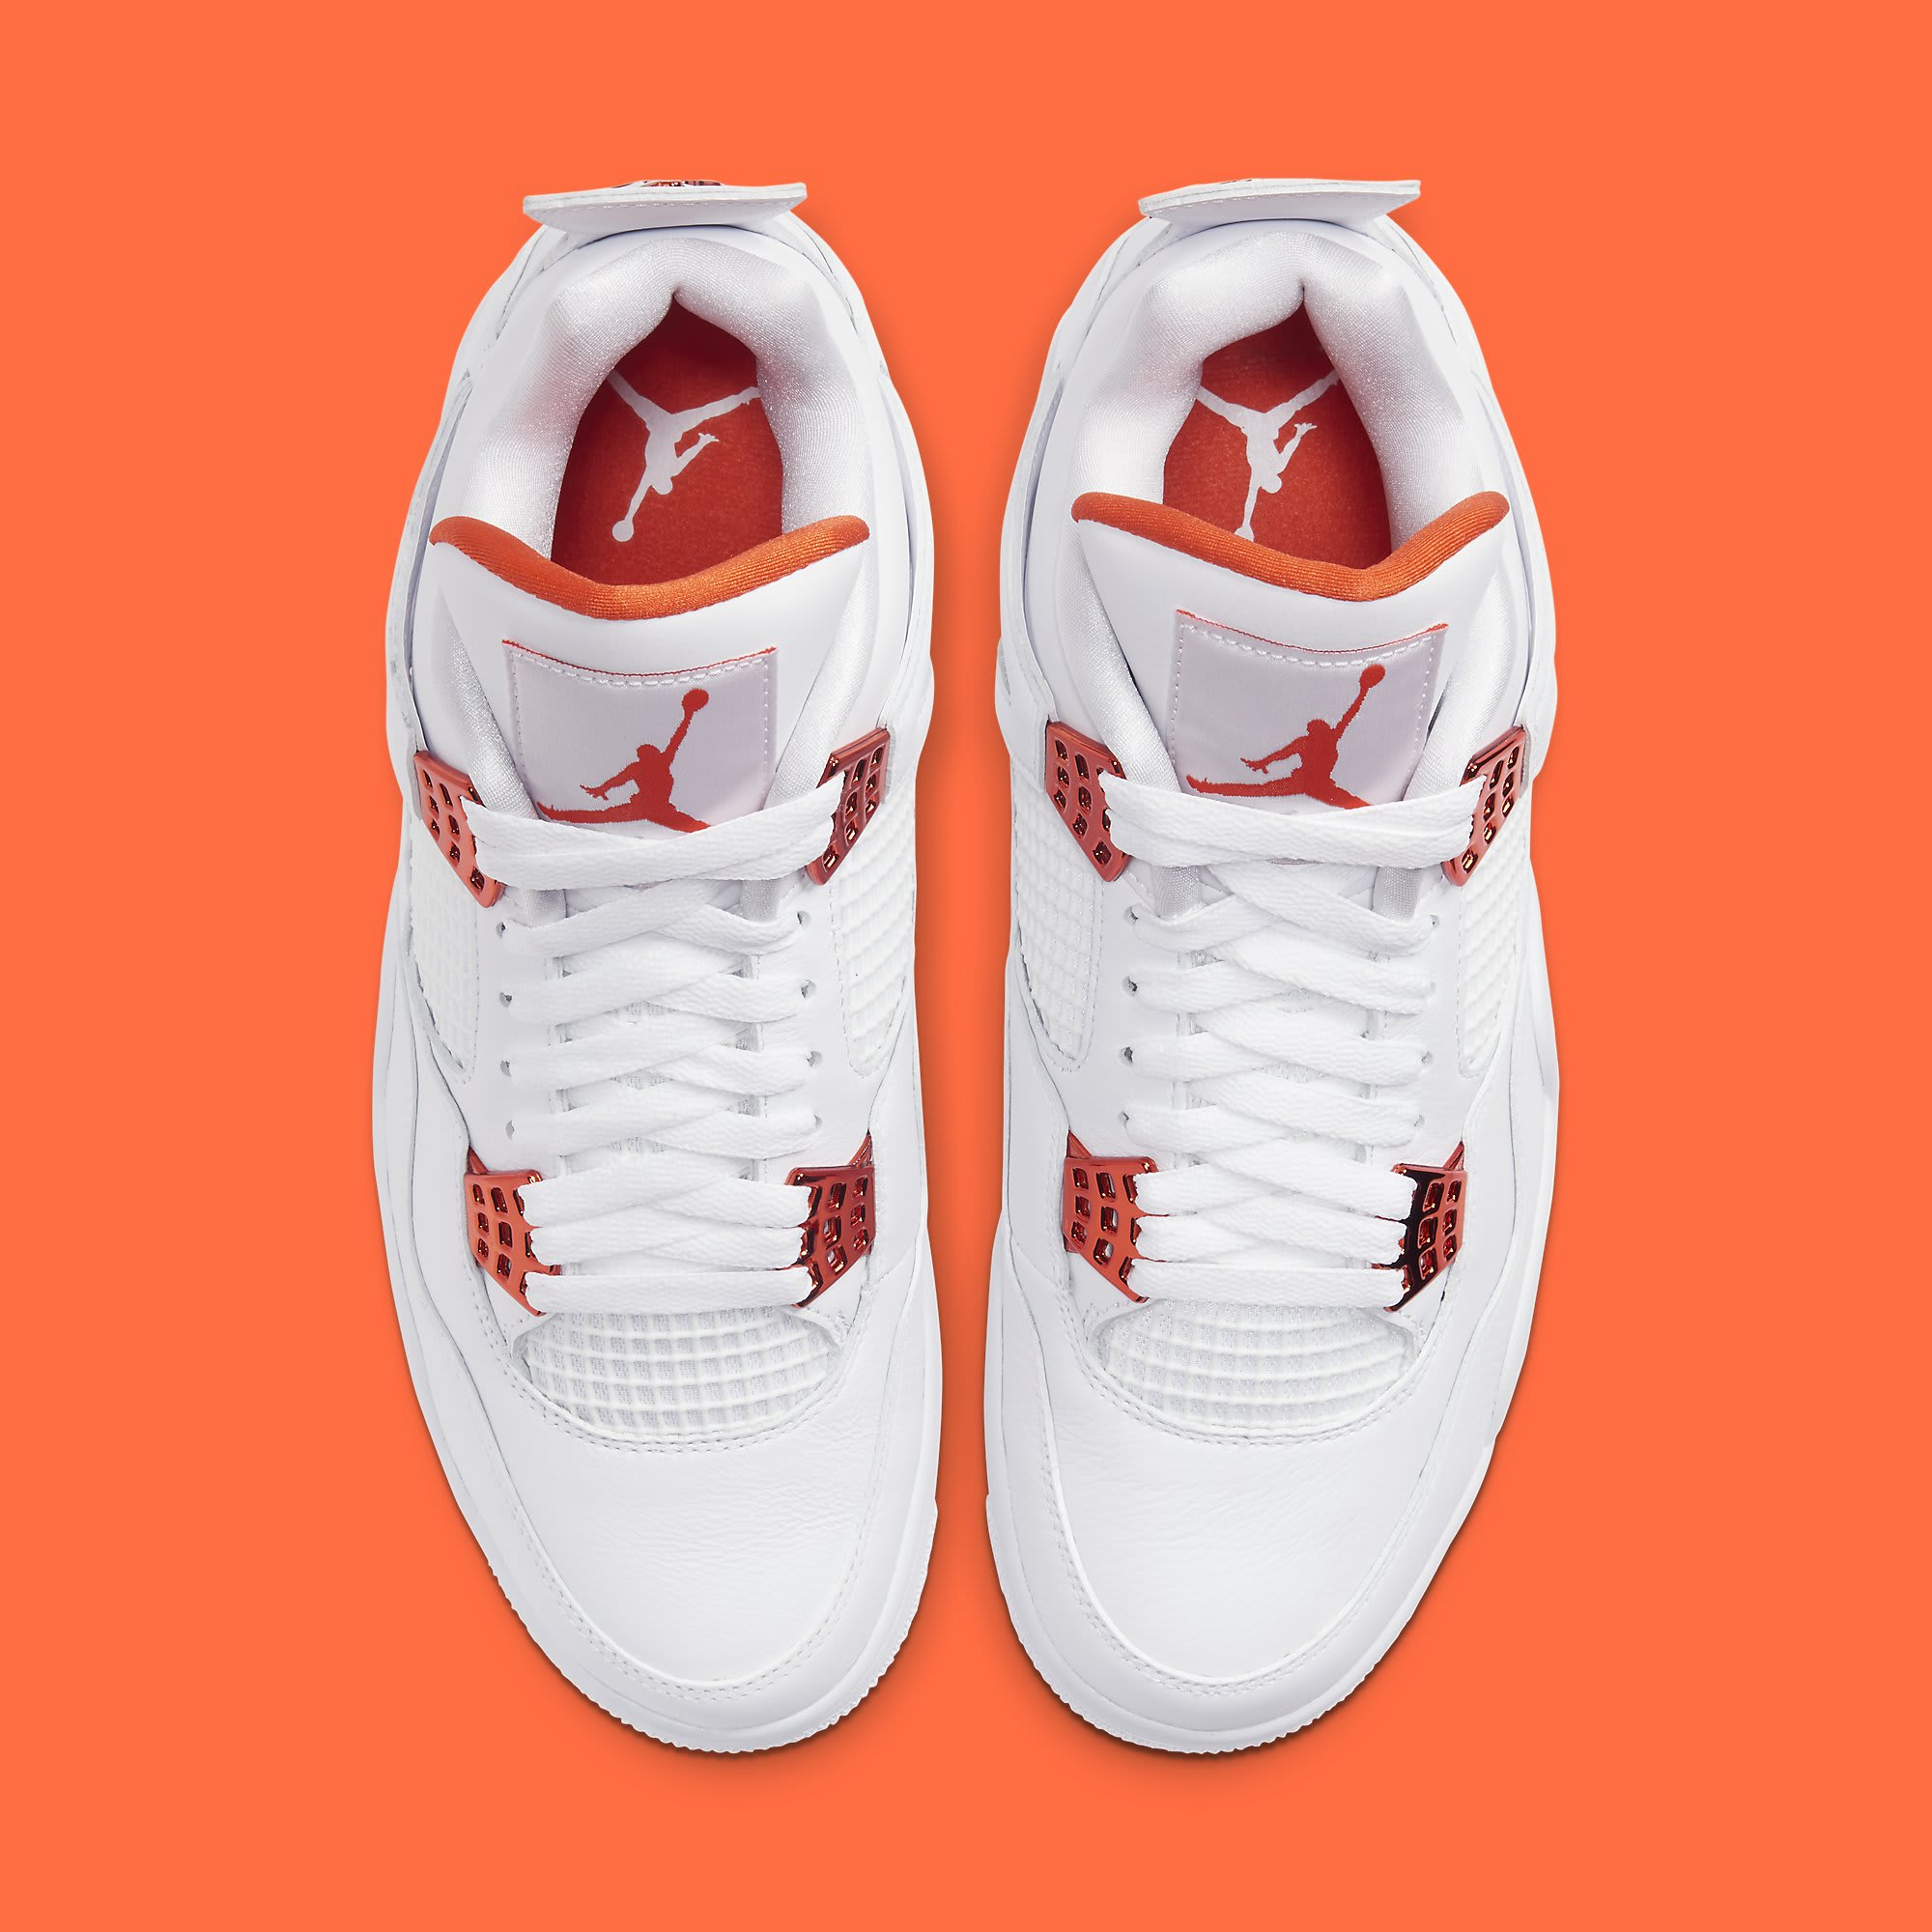 Air Jordan 4 Metallic Orange Release Date CT8527-118 Top